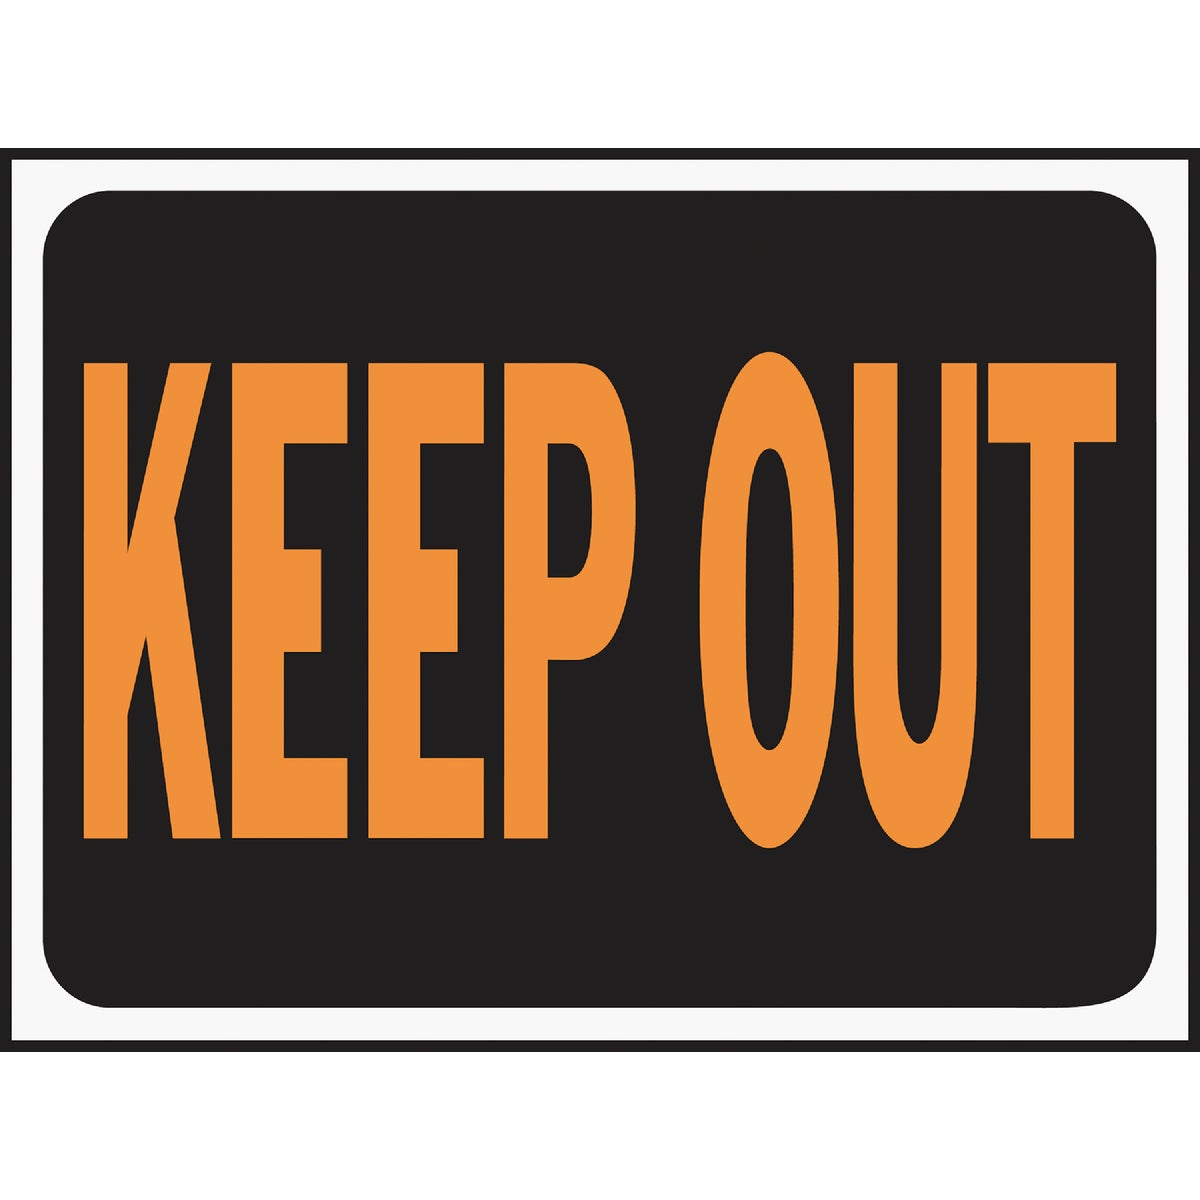 9X12 KEEP OUT SIGN - 3010 by Hy Ko Prods Co